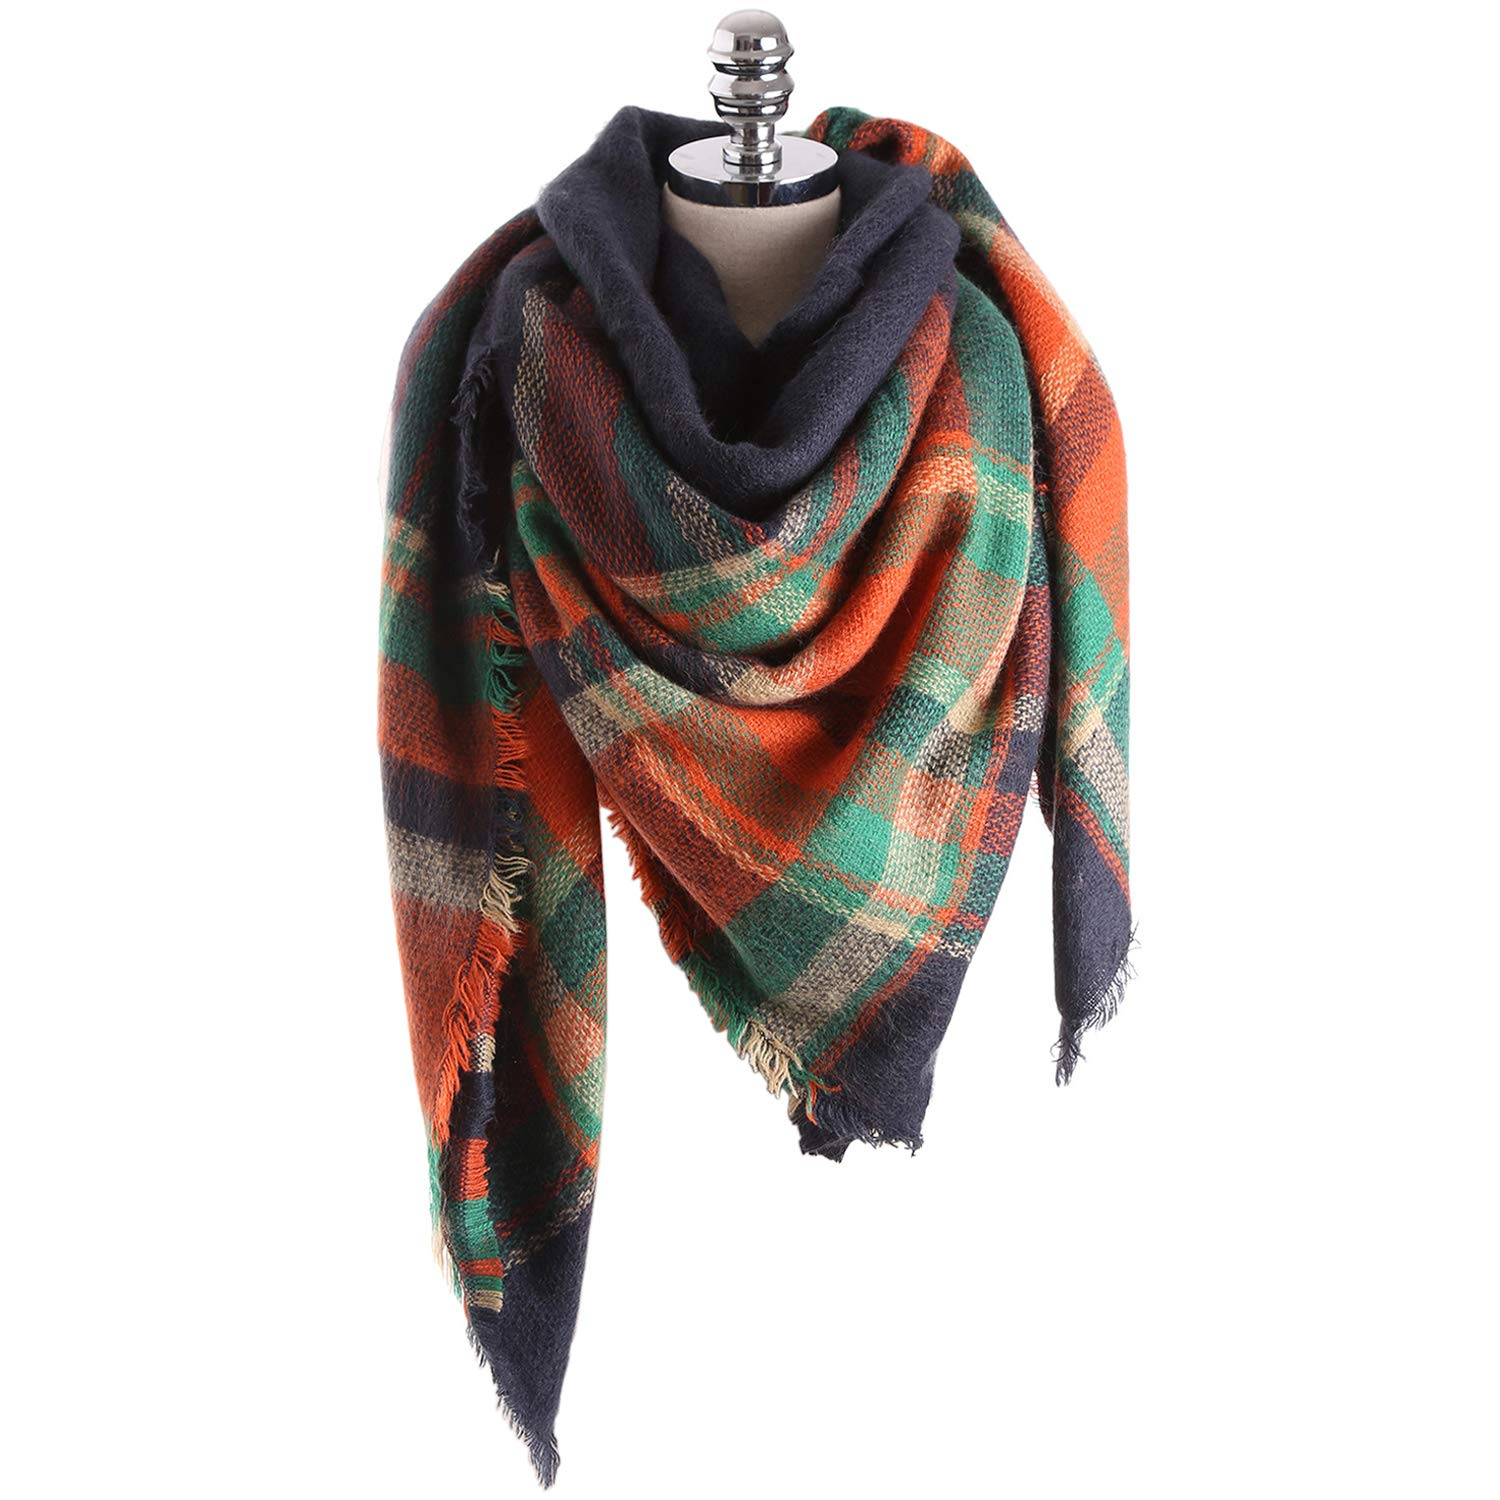 Warm Scarf, Motent Women's Fashion Wrap Shawl Plaid Thin Blanket for Winter Fall